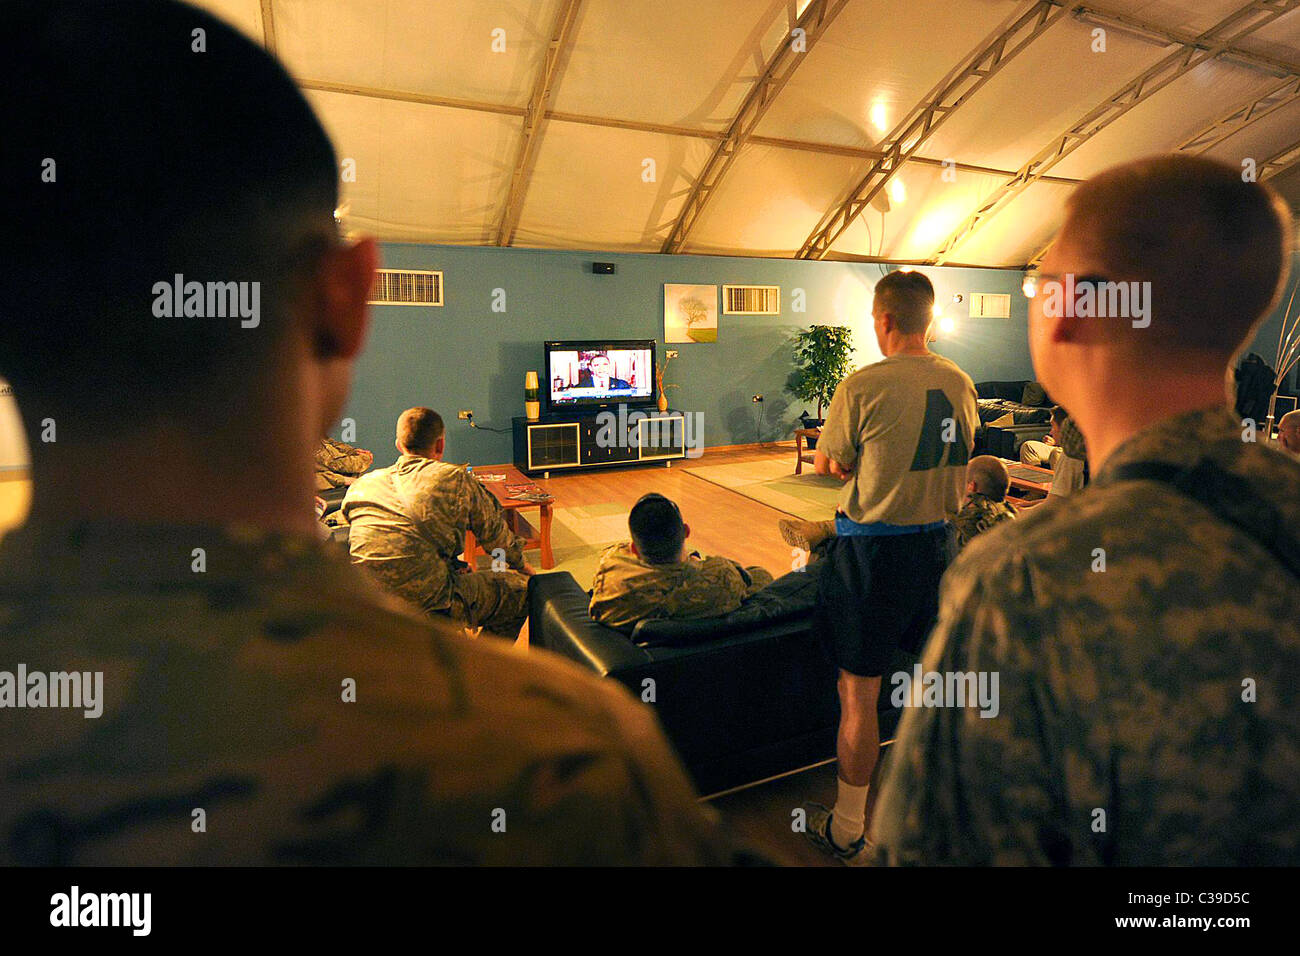 U.S. service members watch on television President Obama talk about the details of the death of 9/11 mastermind, - Stock Image